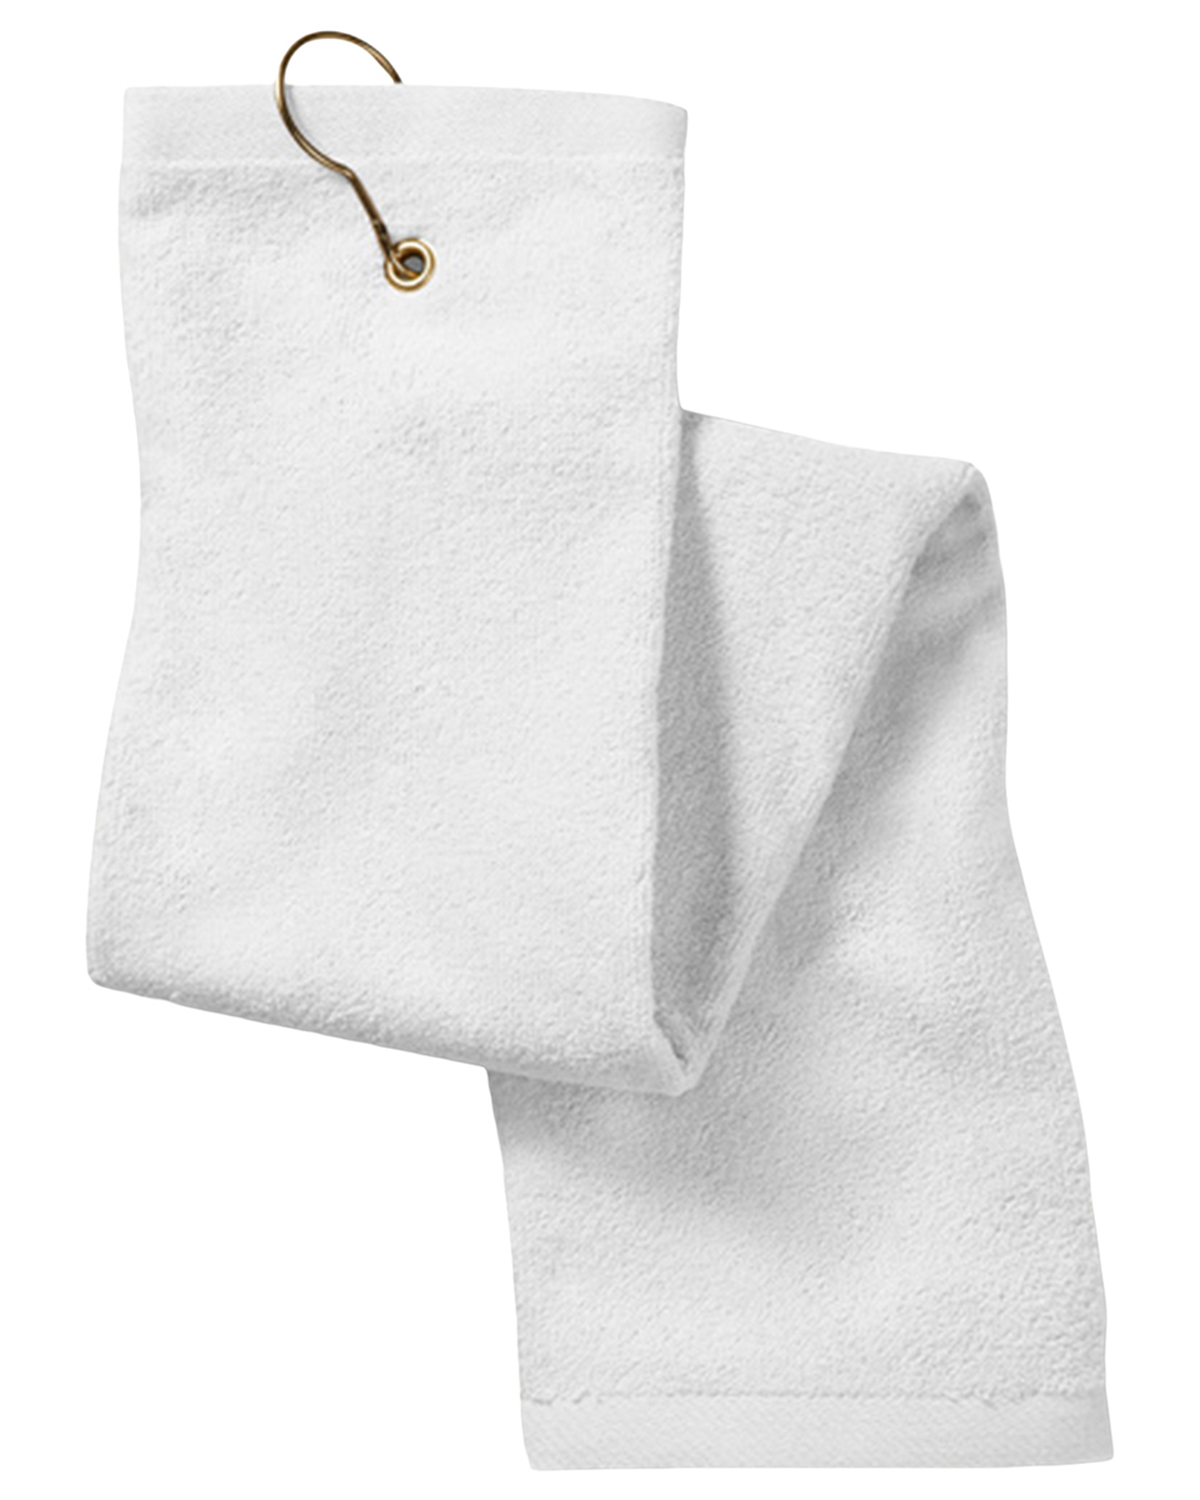 Anvil T68TH Unisex Deluxe Tri-Fold Hemmed Hand Towel With Center Grommet and Hook at GotApparel